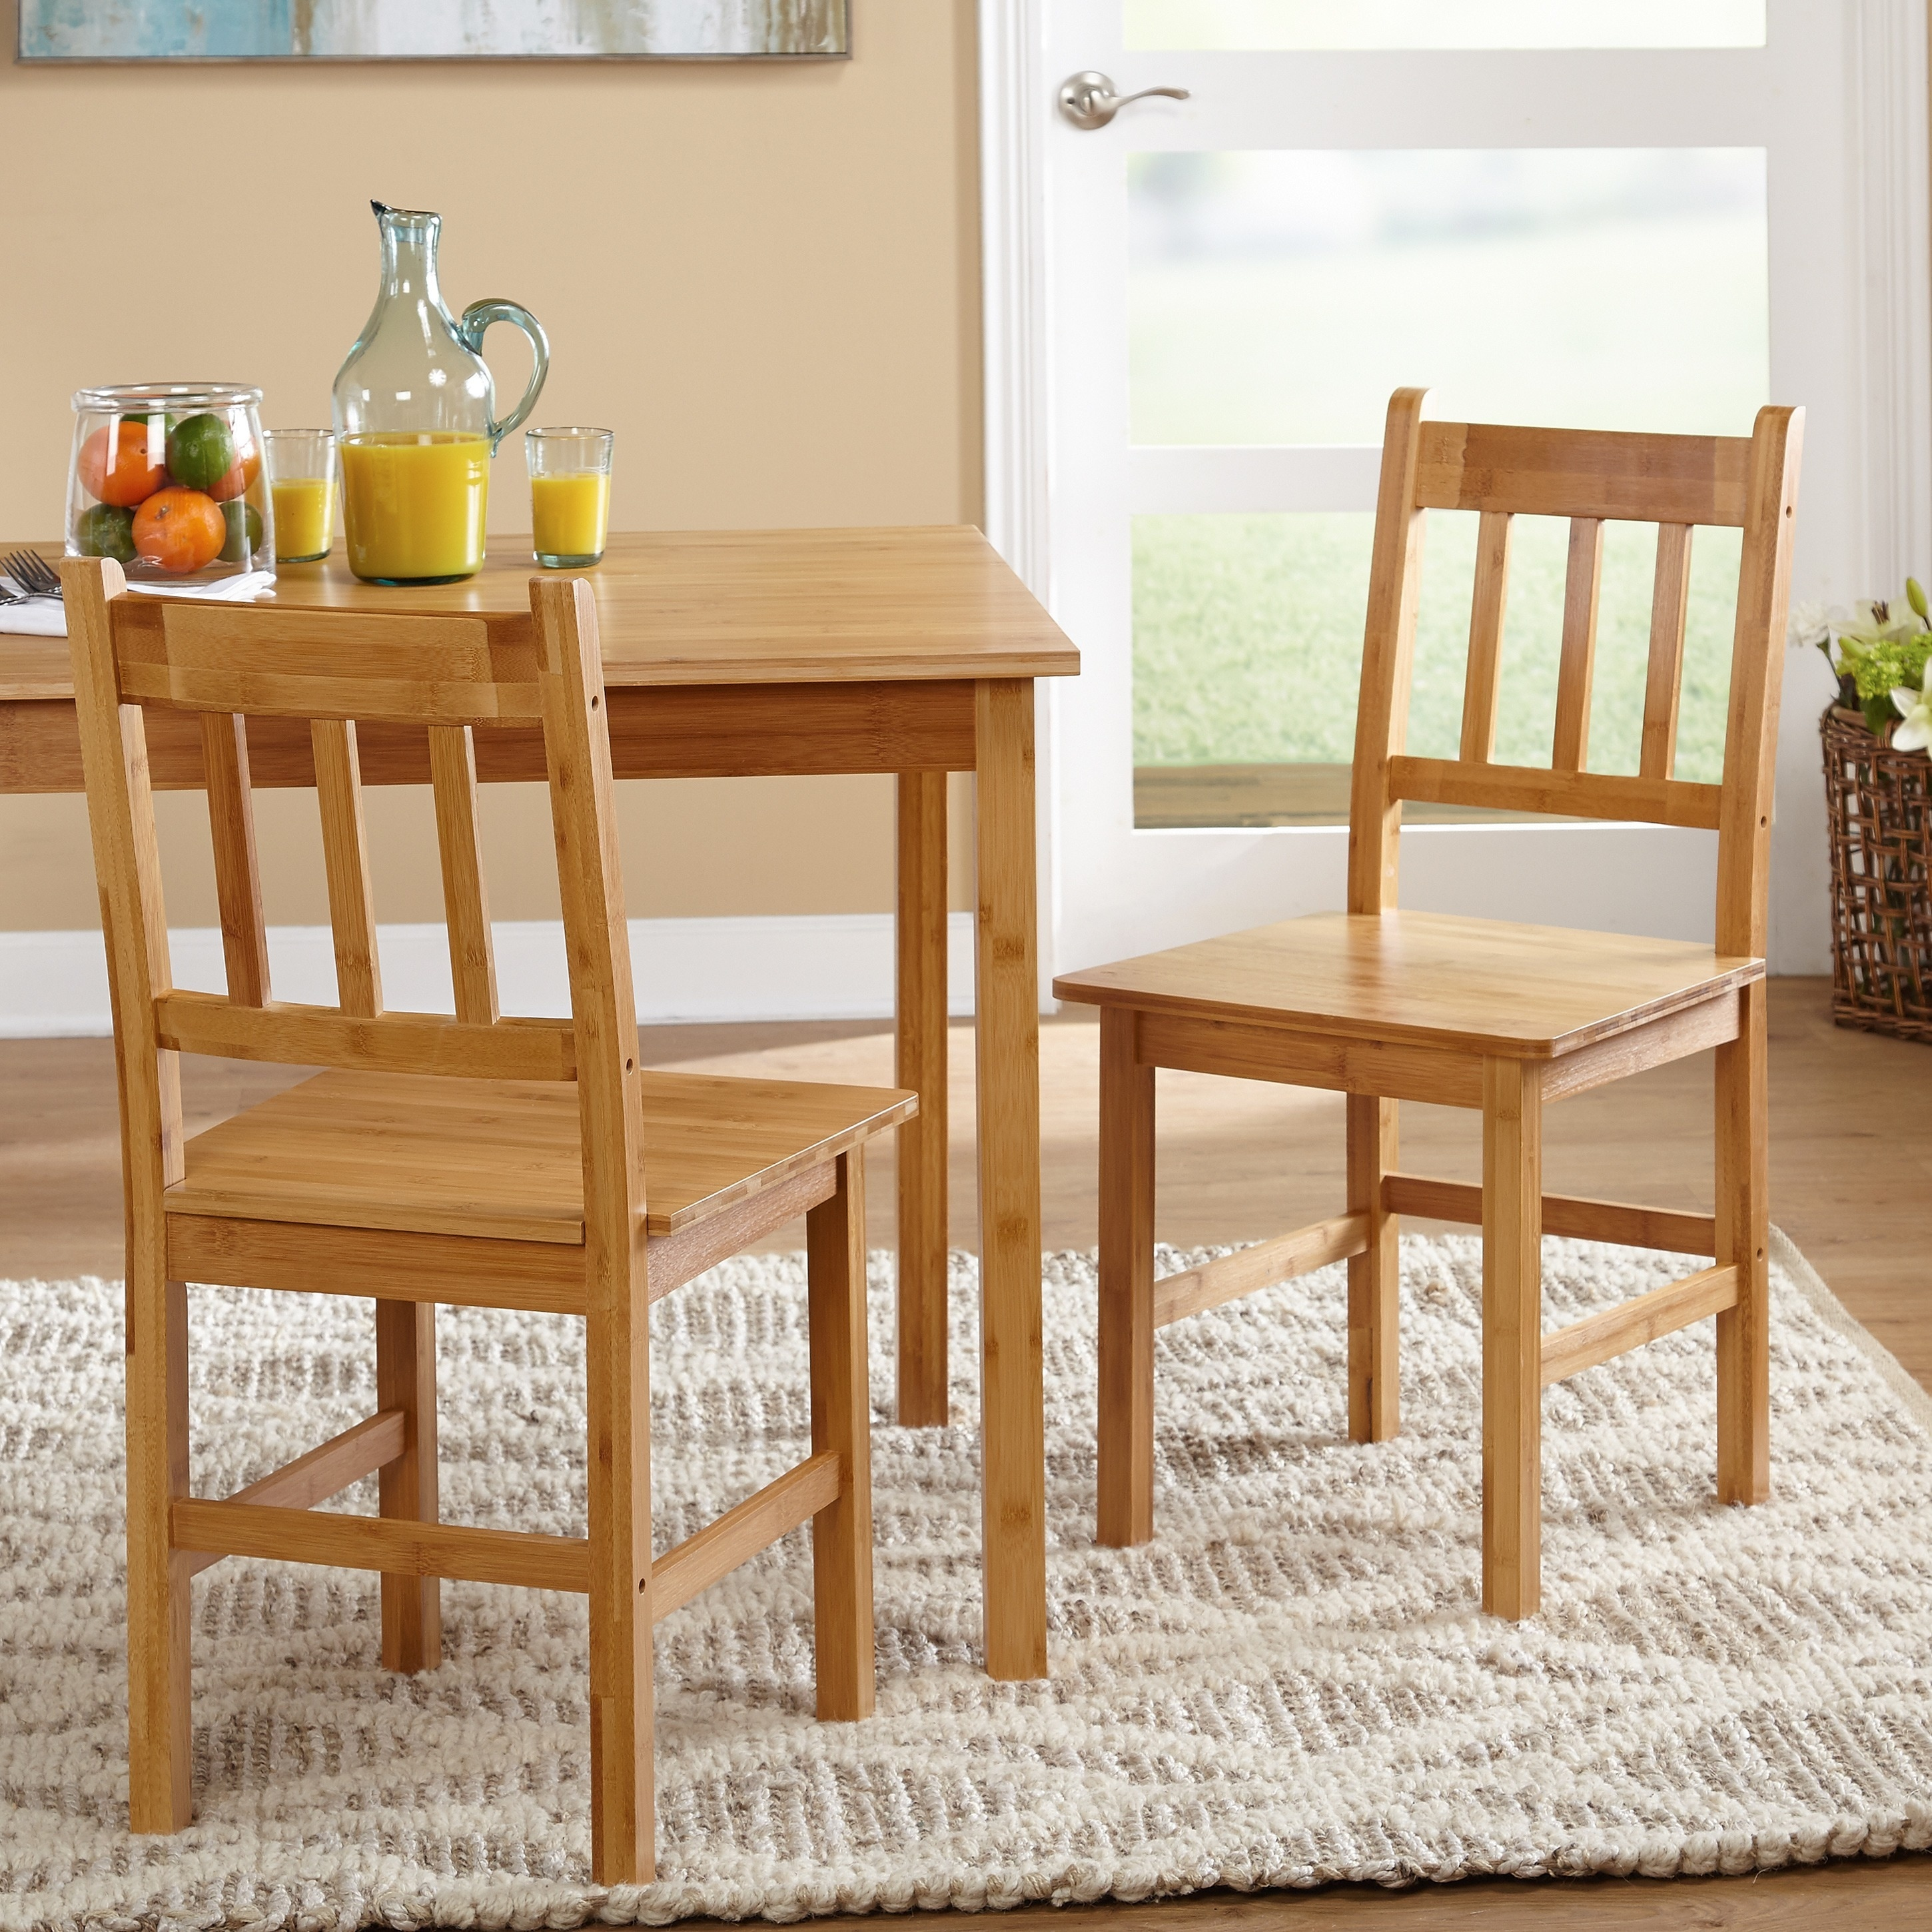 Shop Simple Living Bamboo 5 Piece Dining Set   Free Shipping Today    Overstock.com   5767578